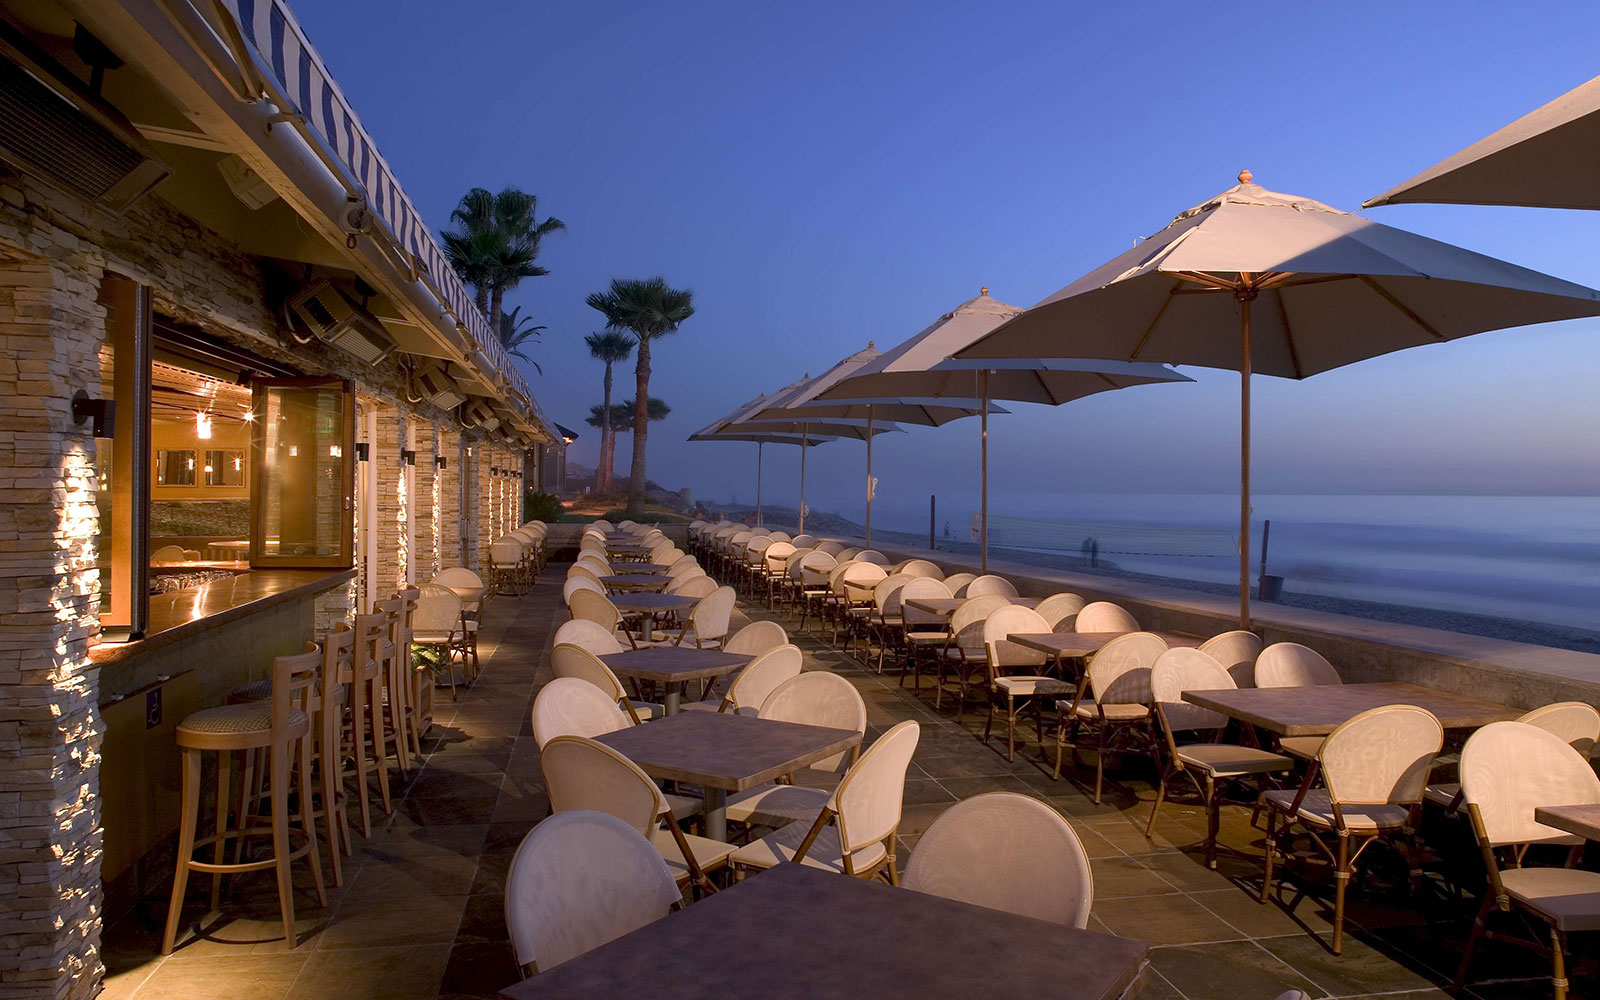 Ten of America's Best Outdoor Dining Spots, According to OpenTable: Poseidon in Del Mar, California